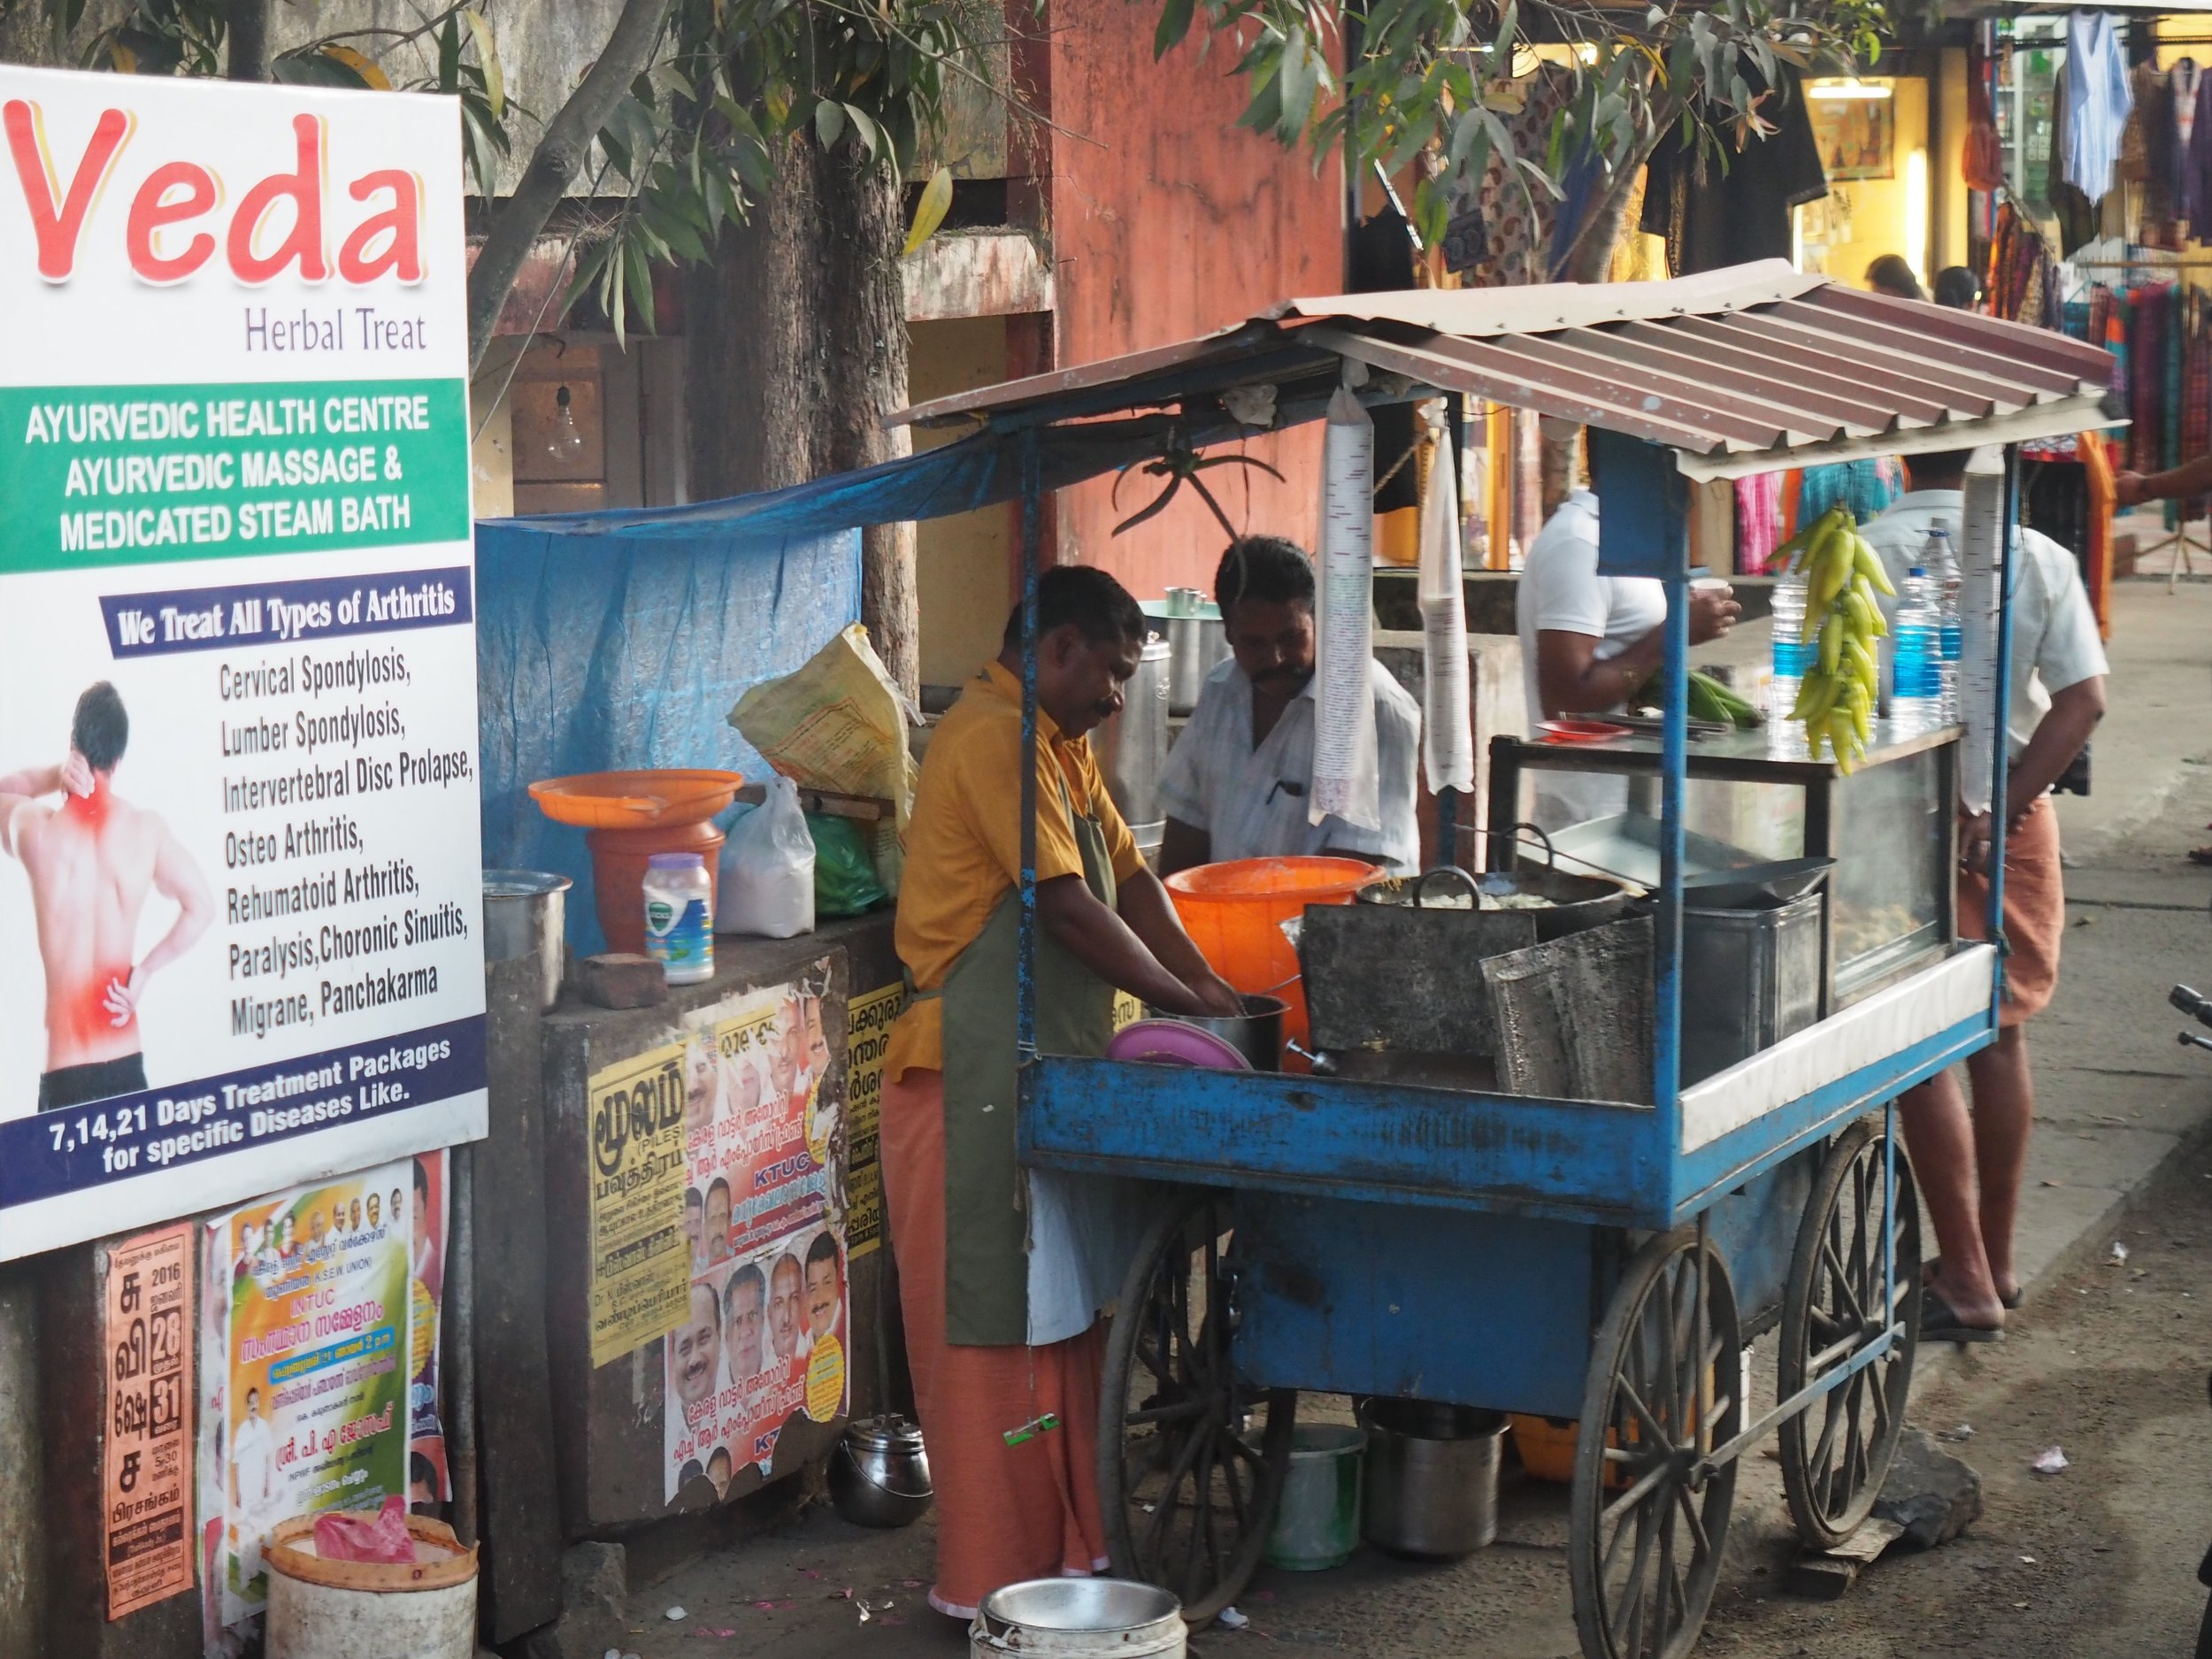 Food vendors provide an important service, they supply daily snack to locals.